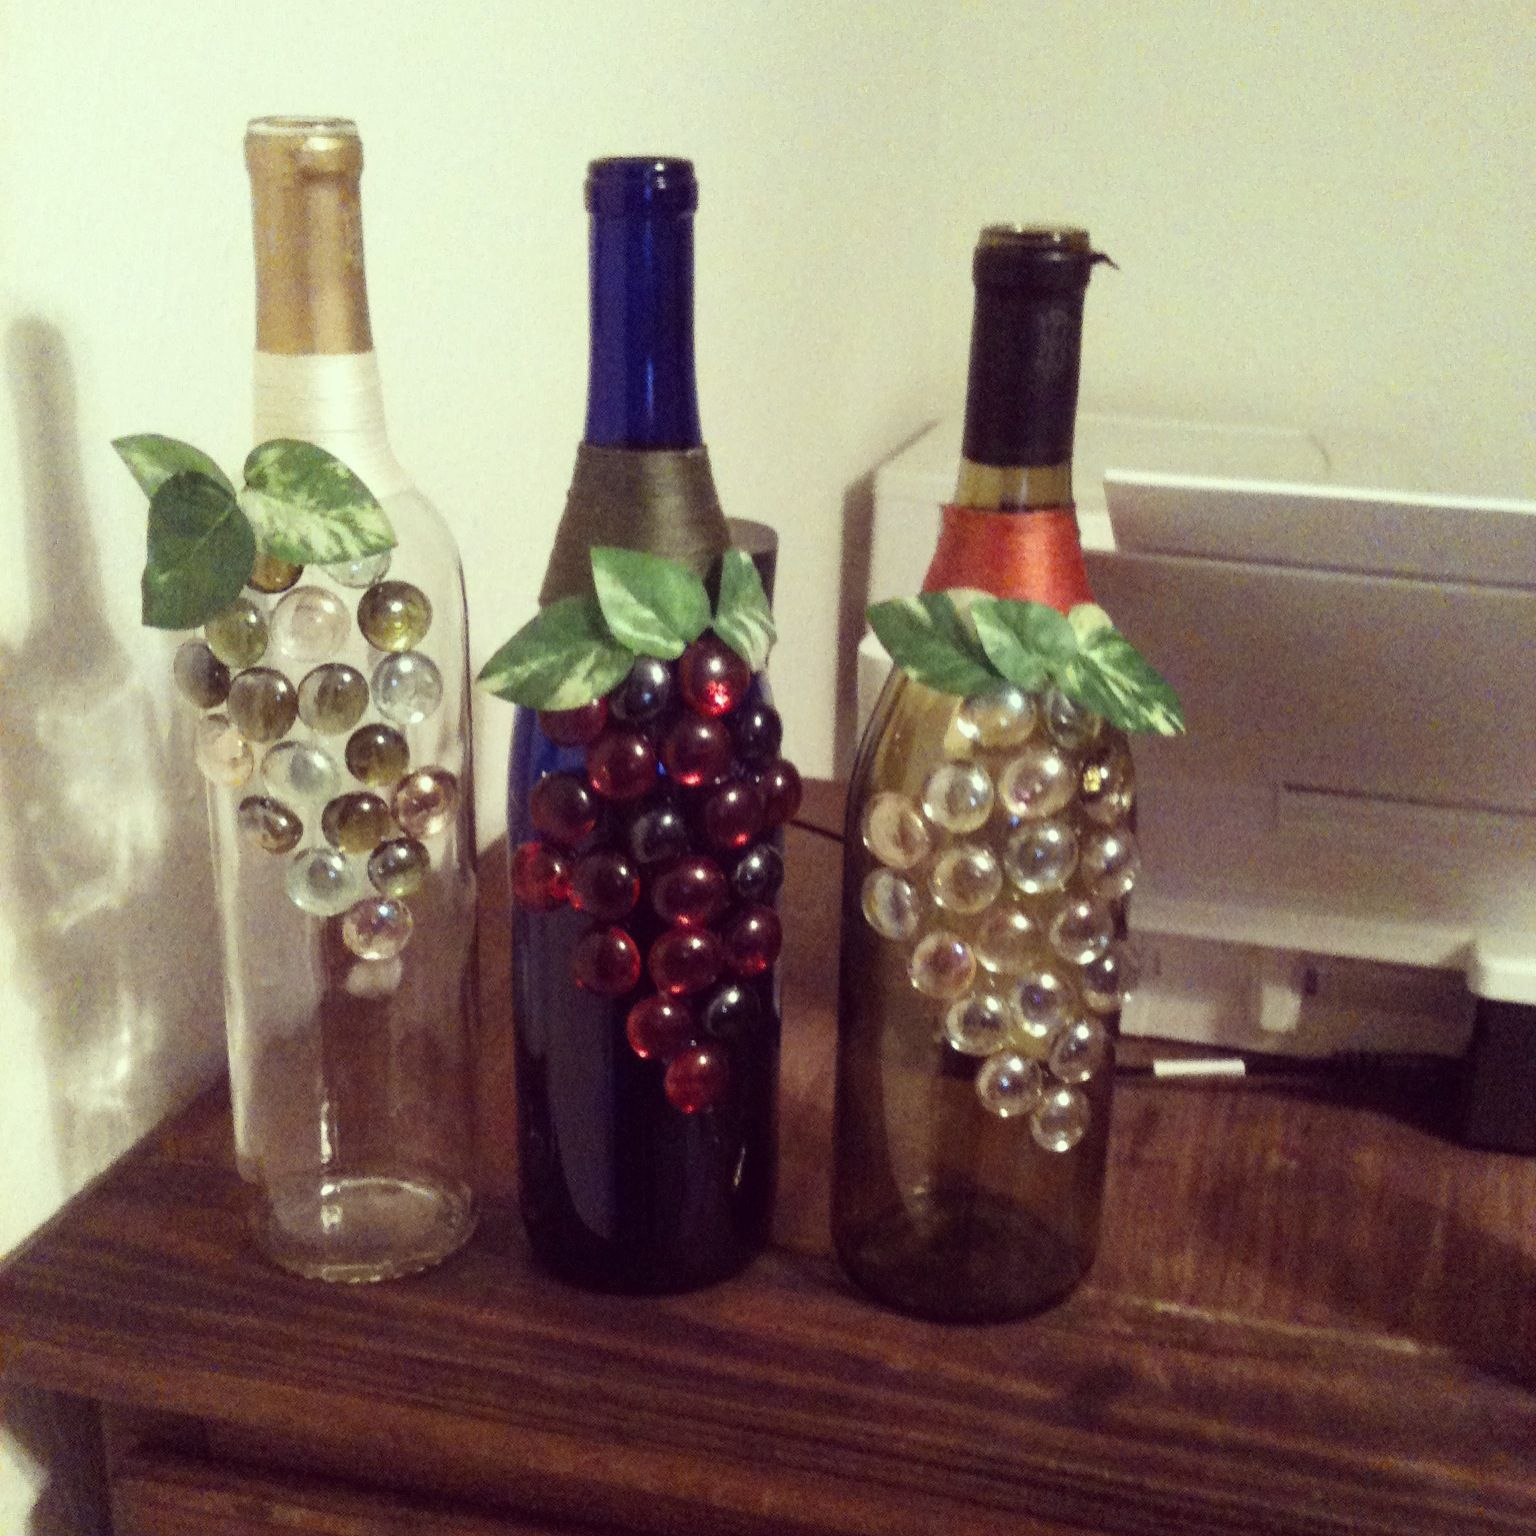 Wine cork crafts diy decorating projects addicted 2 for Crafts with corks from wine bottles